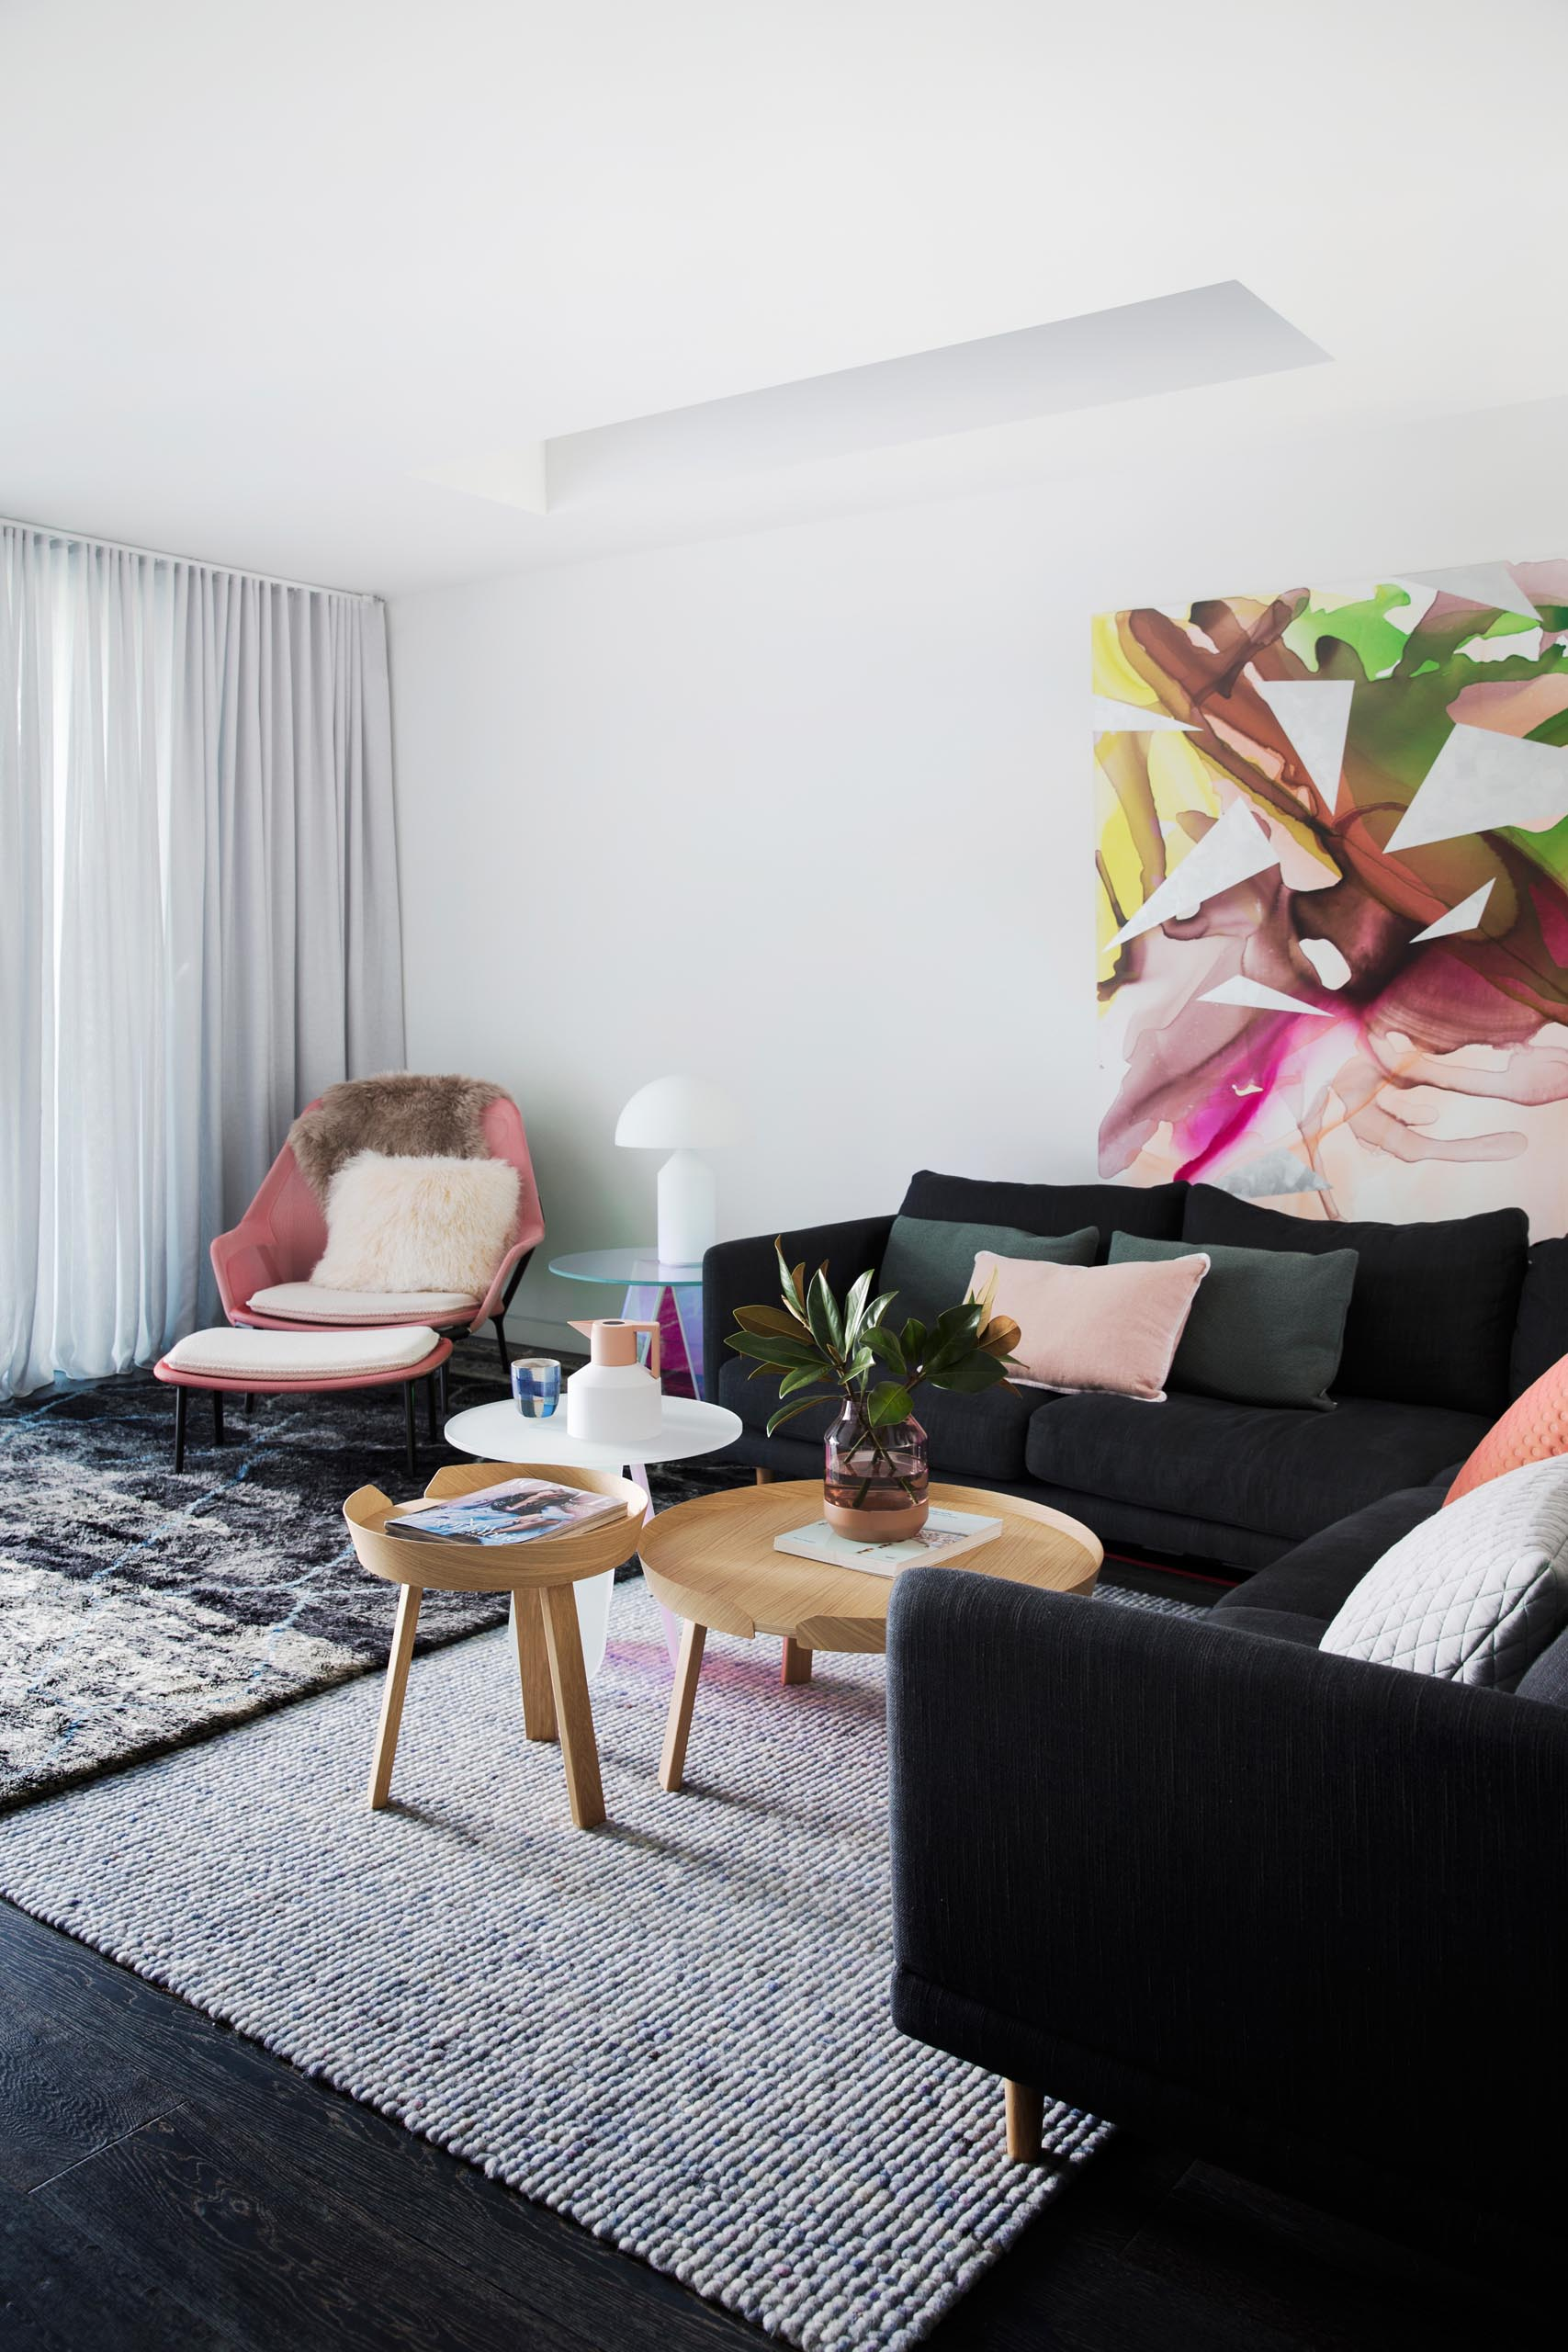 A modern living room with blush pink decorative accents.